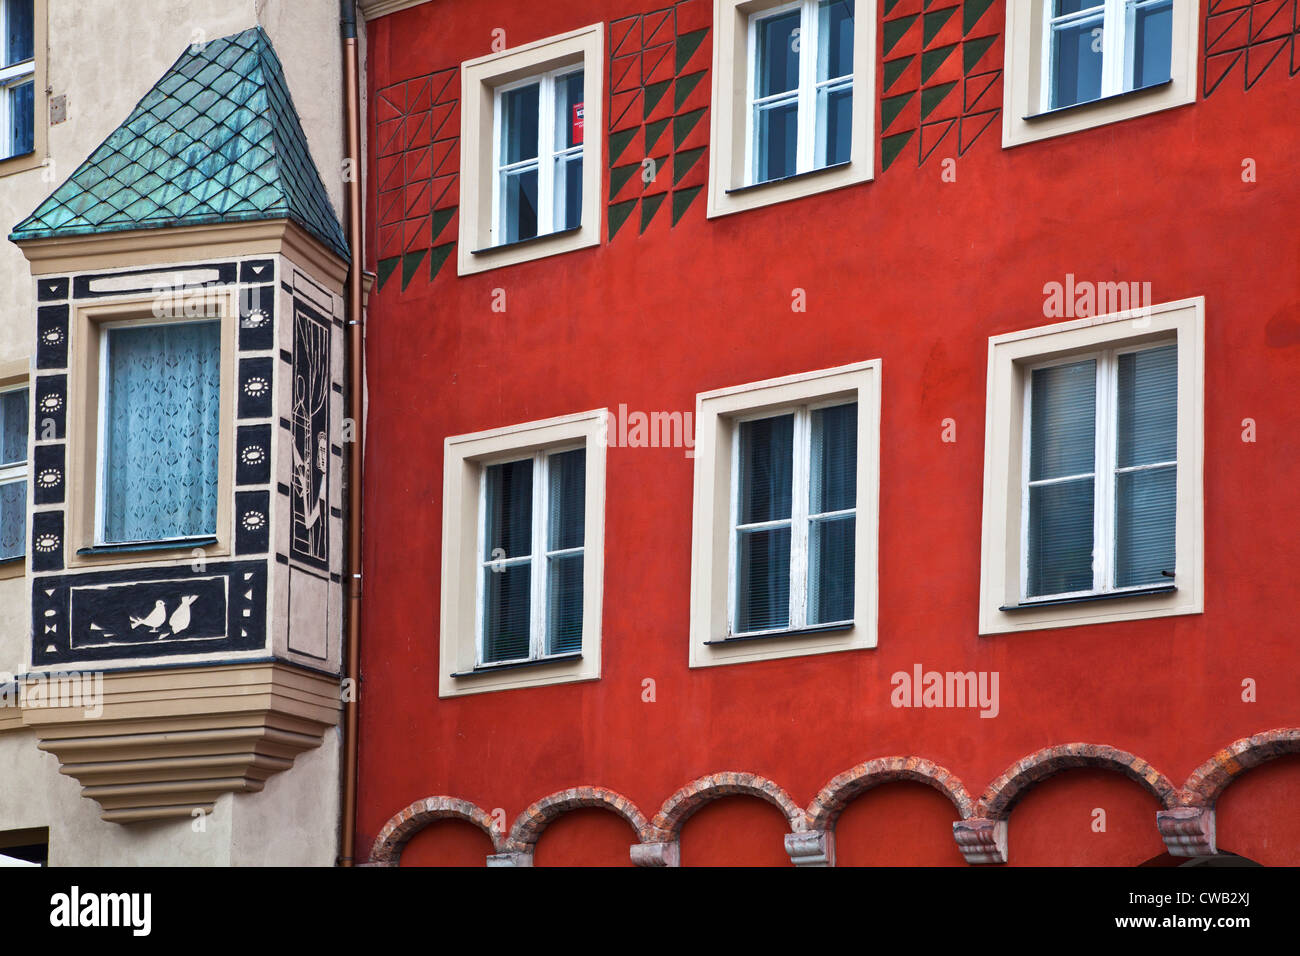 Oriel or bay window and painted decorated house facade in old town market square, Stary Rynek, in Polish city of - Stock Image